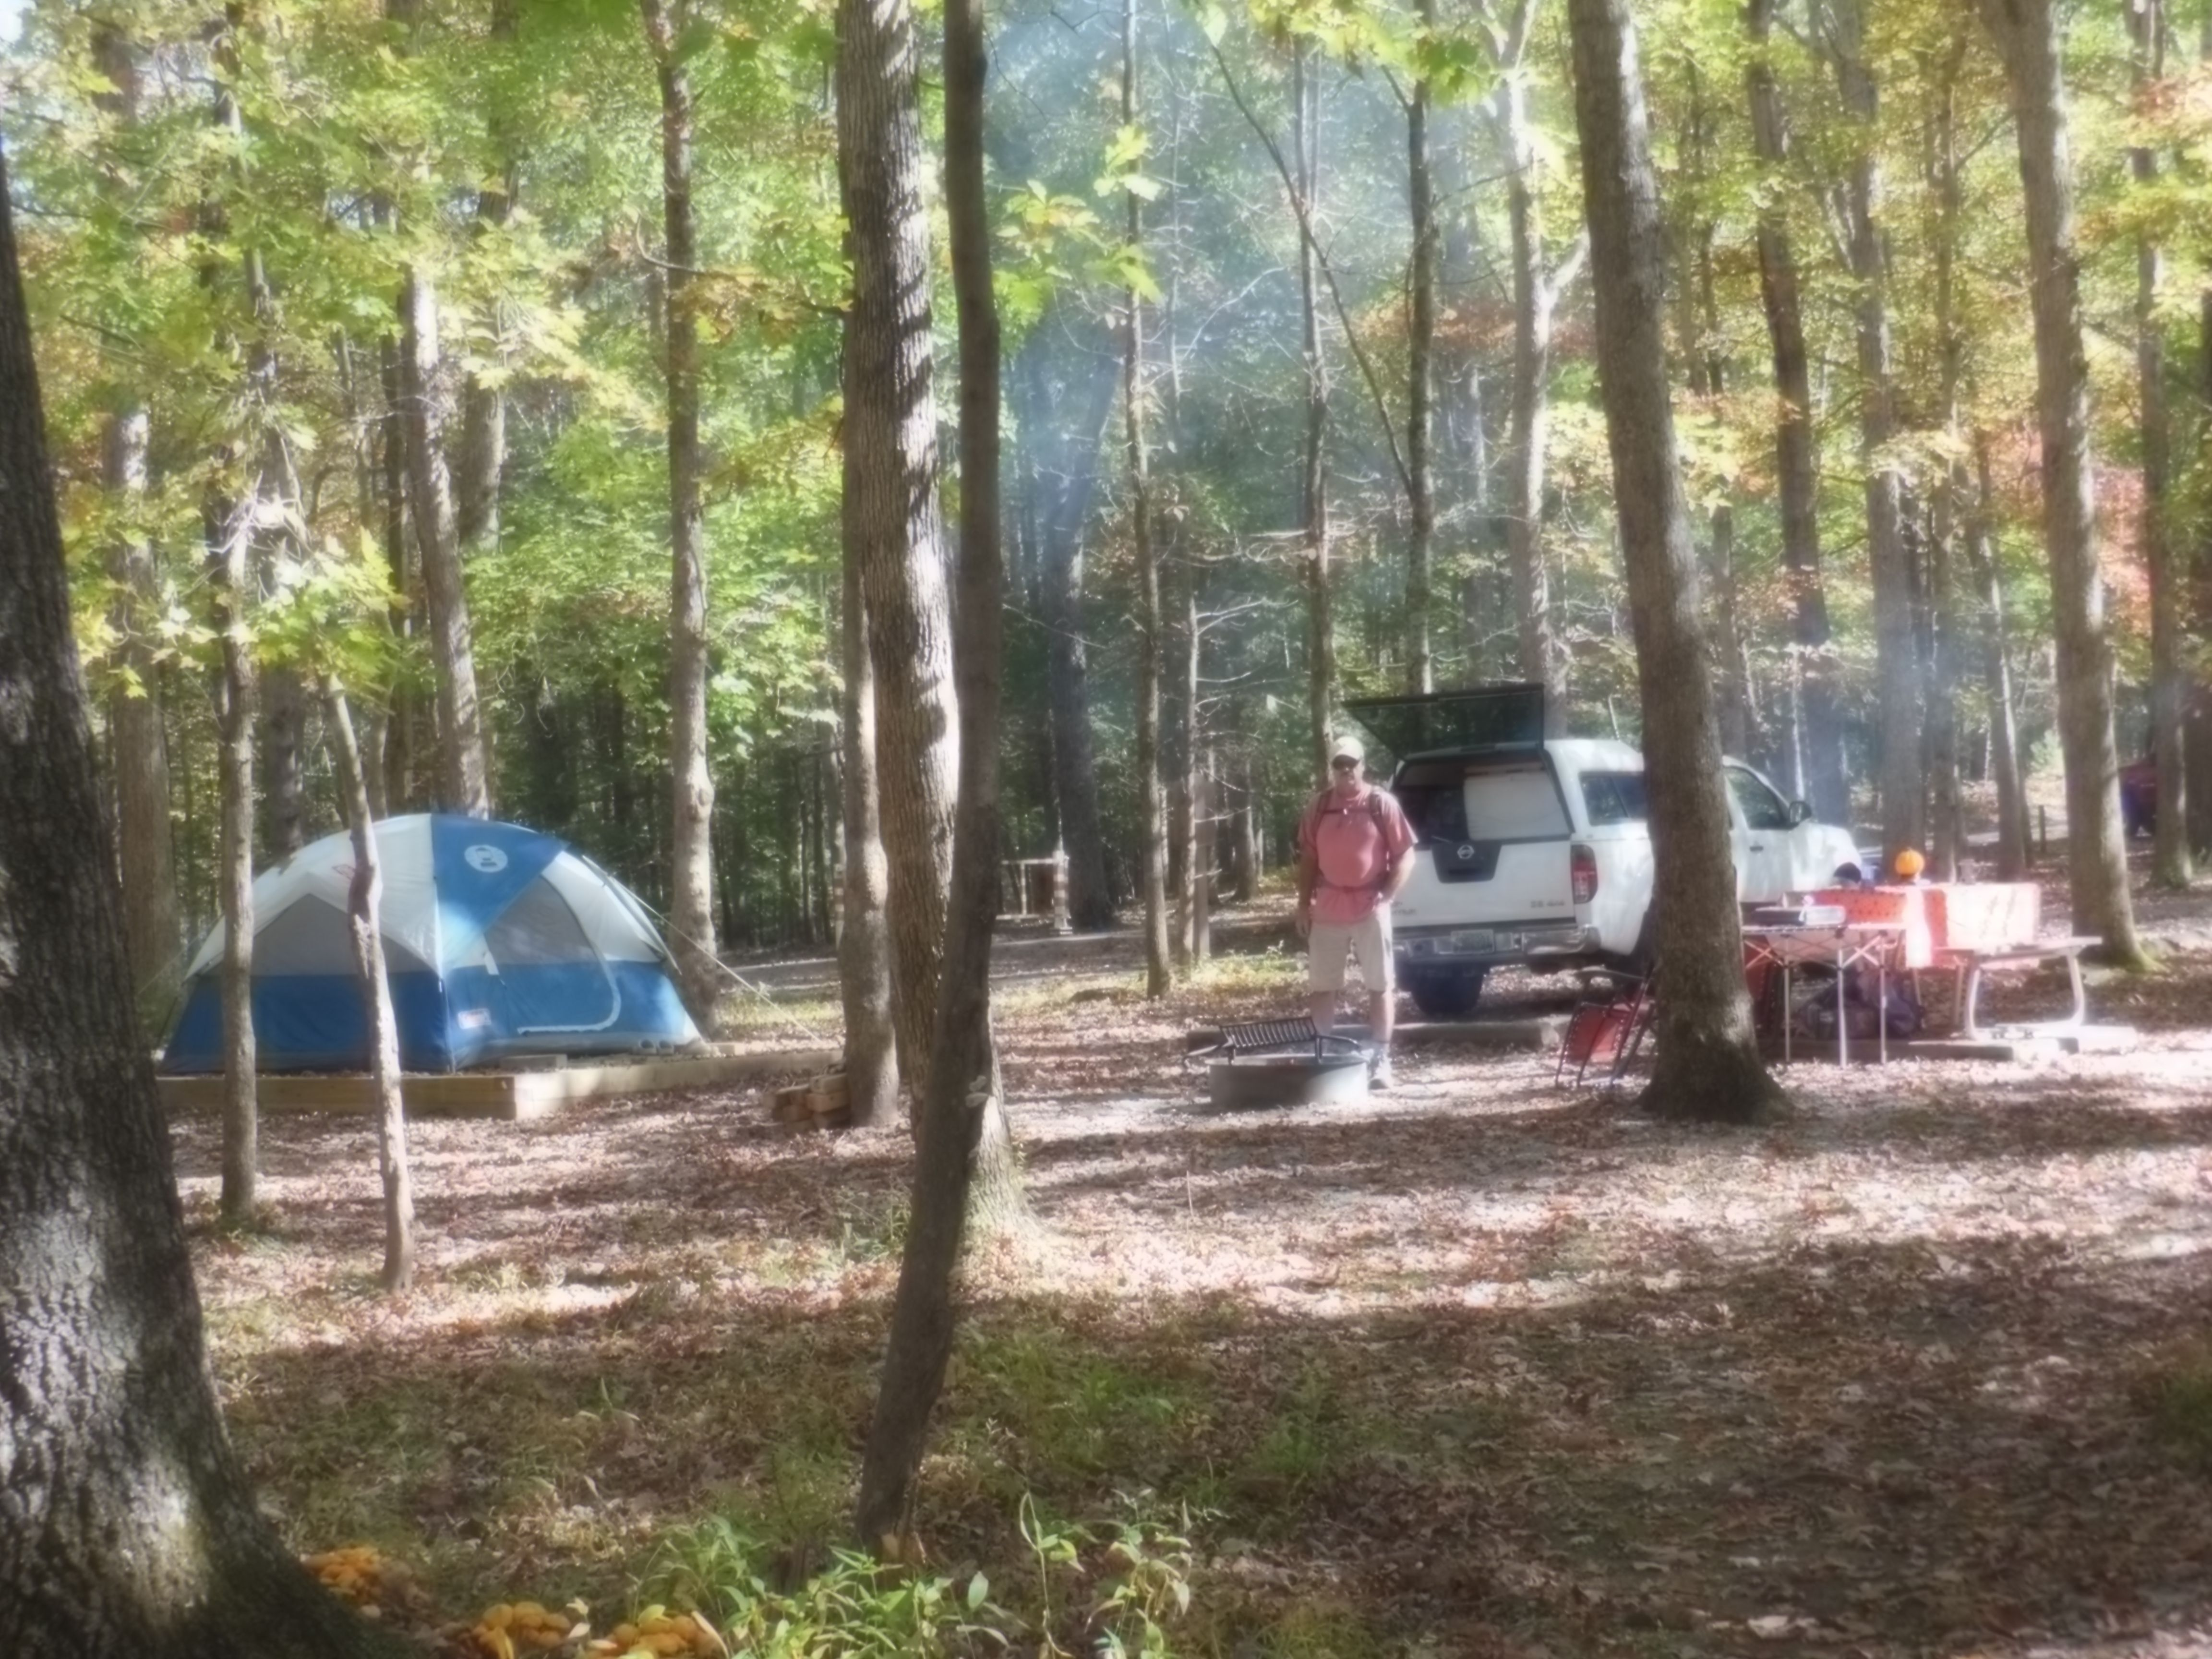 camping in cades cove   Cades cove, Smoky mountains, Camping